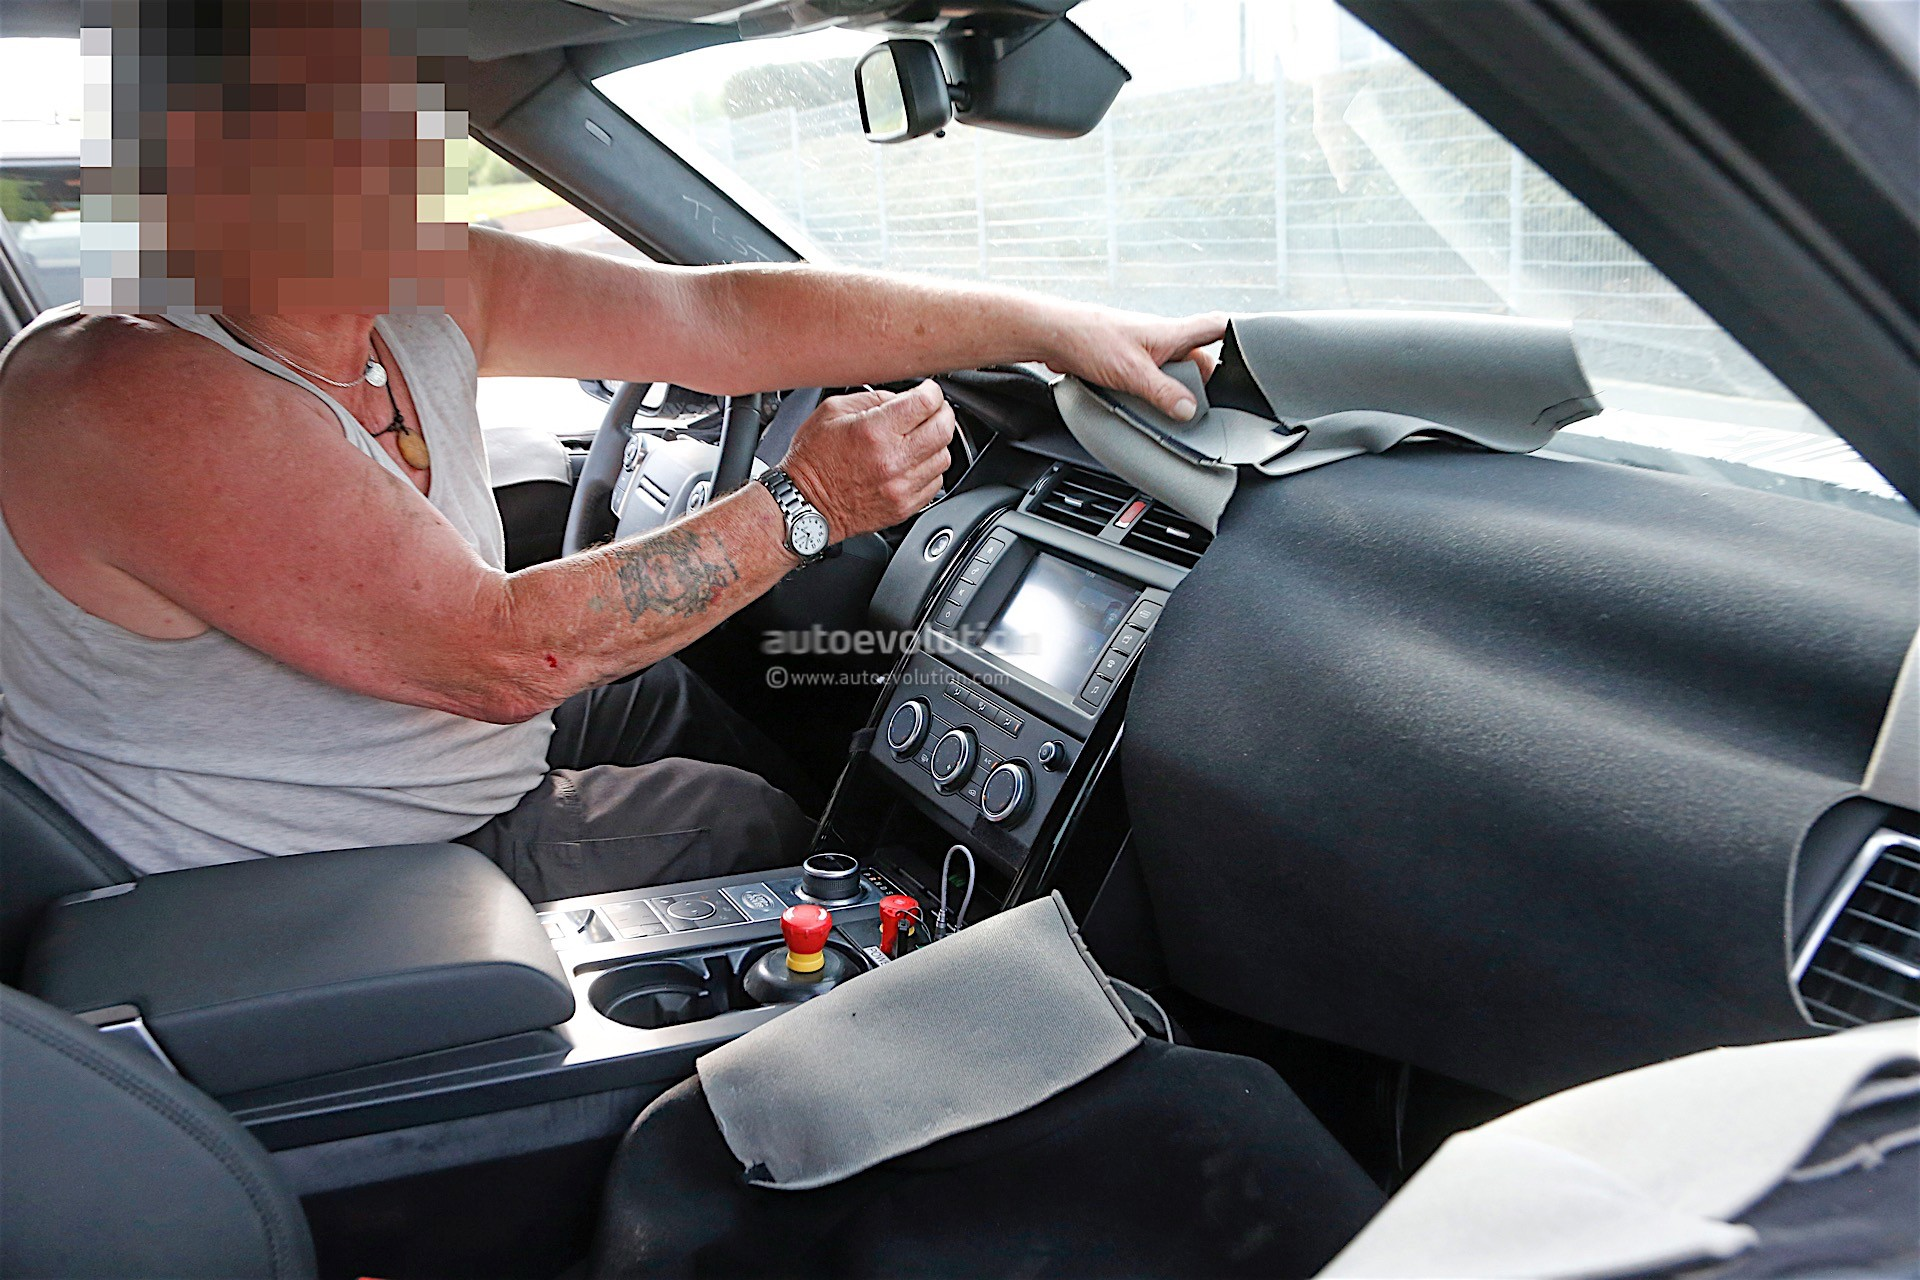 2018 Land Rover Discovery Spyshots Bring First Glimpse of ...